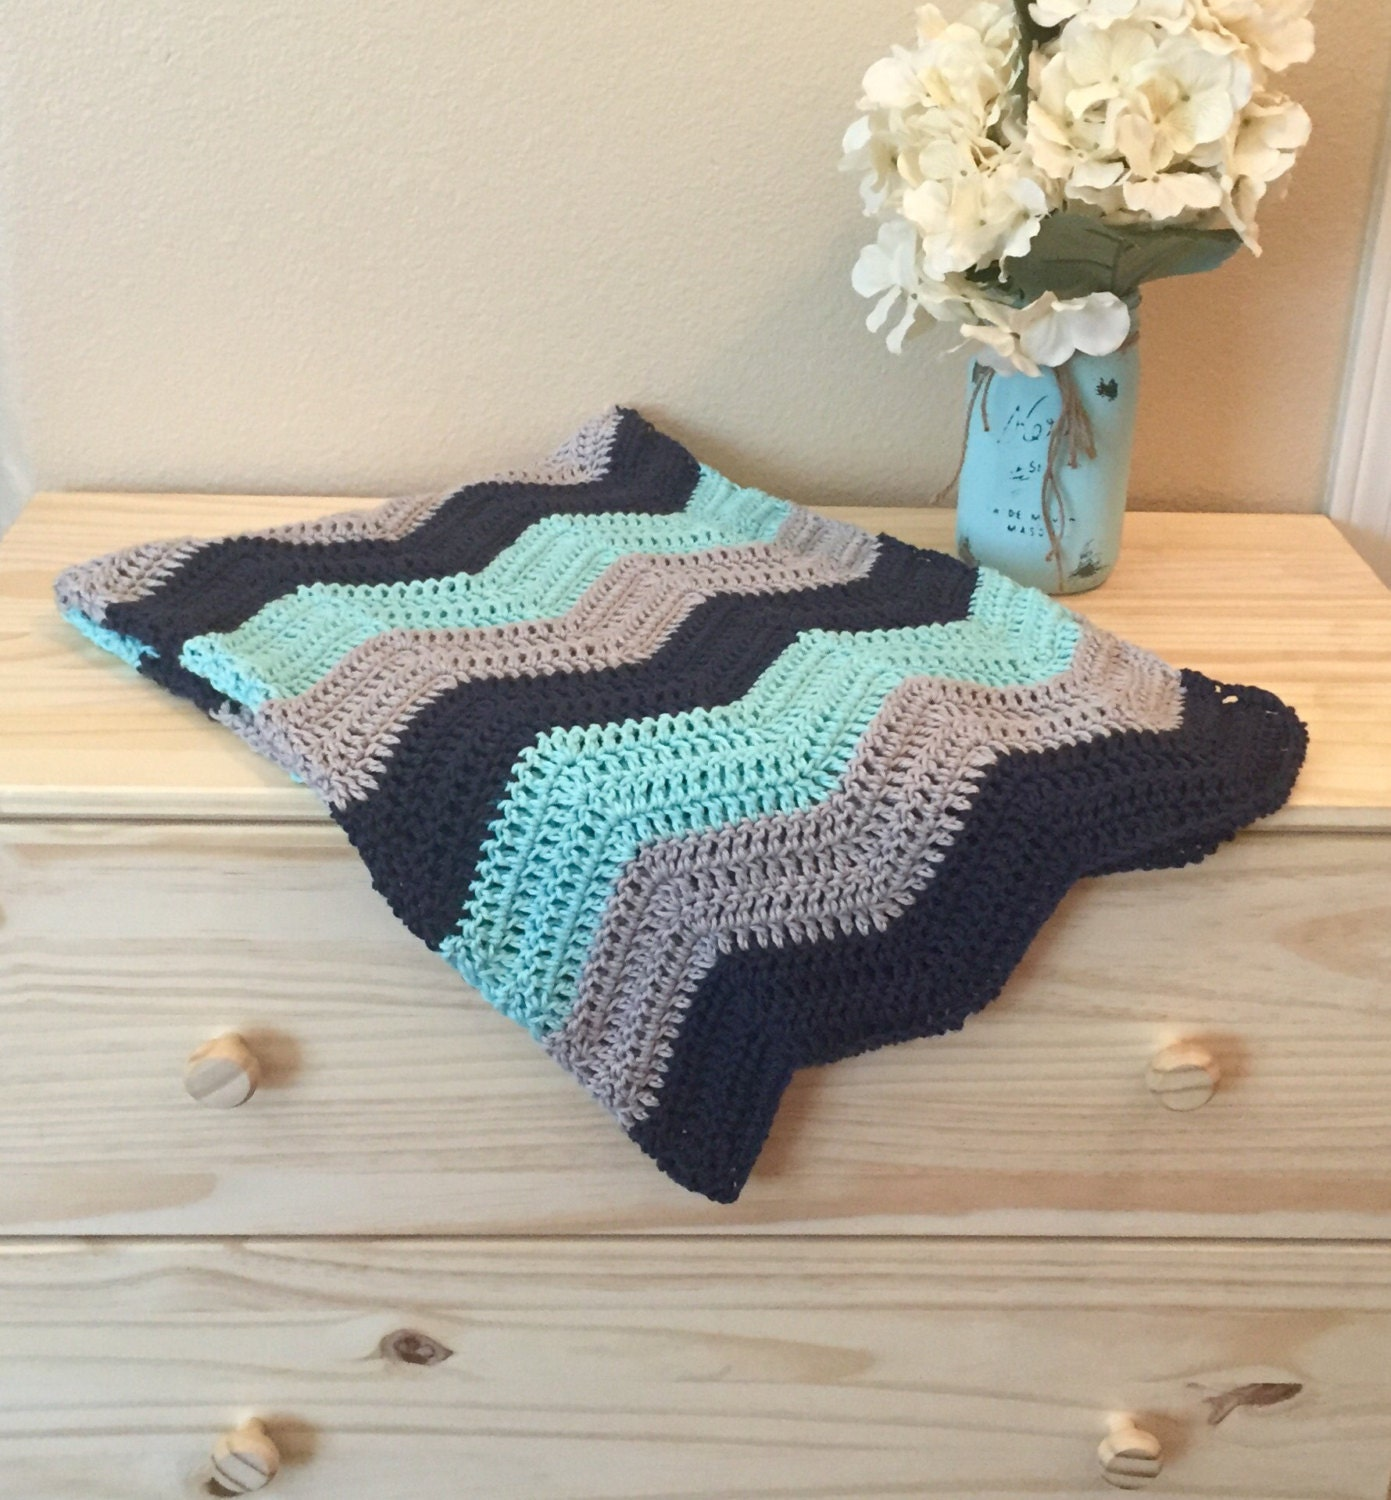 Awesome Ripple Baby Afghanisch Häkelmuster Image Collection - Decke ...